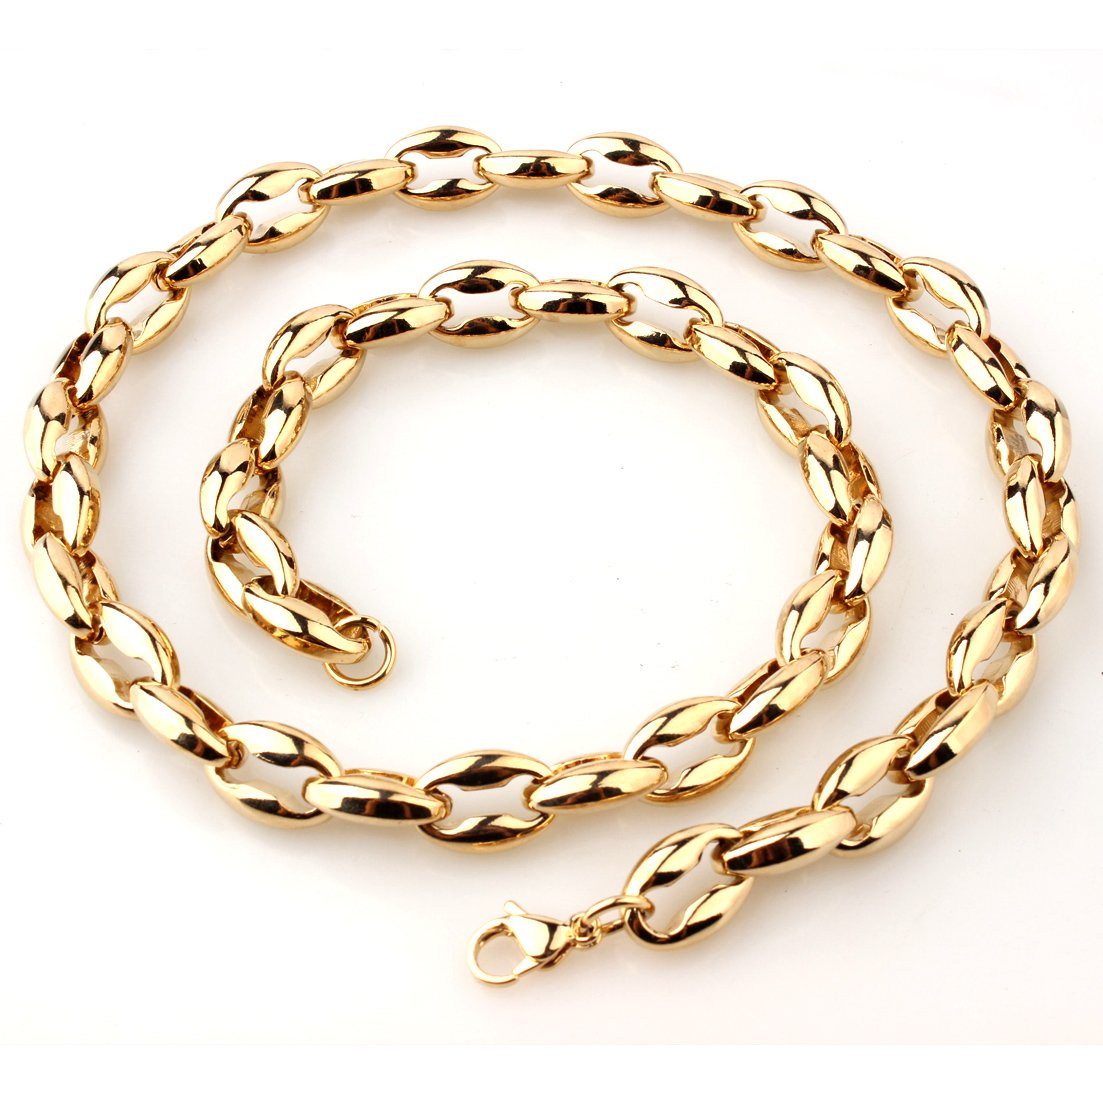 Silver//Gold Tone 12mm Women Mens Stainless Steel Coffee Bean Chain Link Necklace 7-40